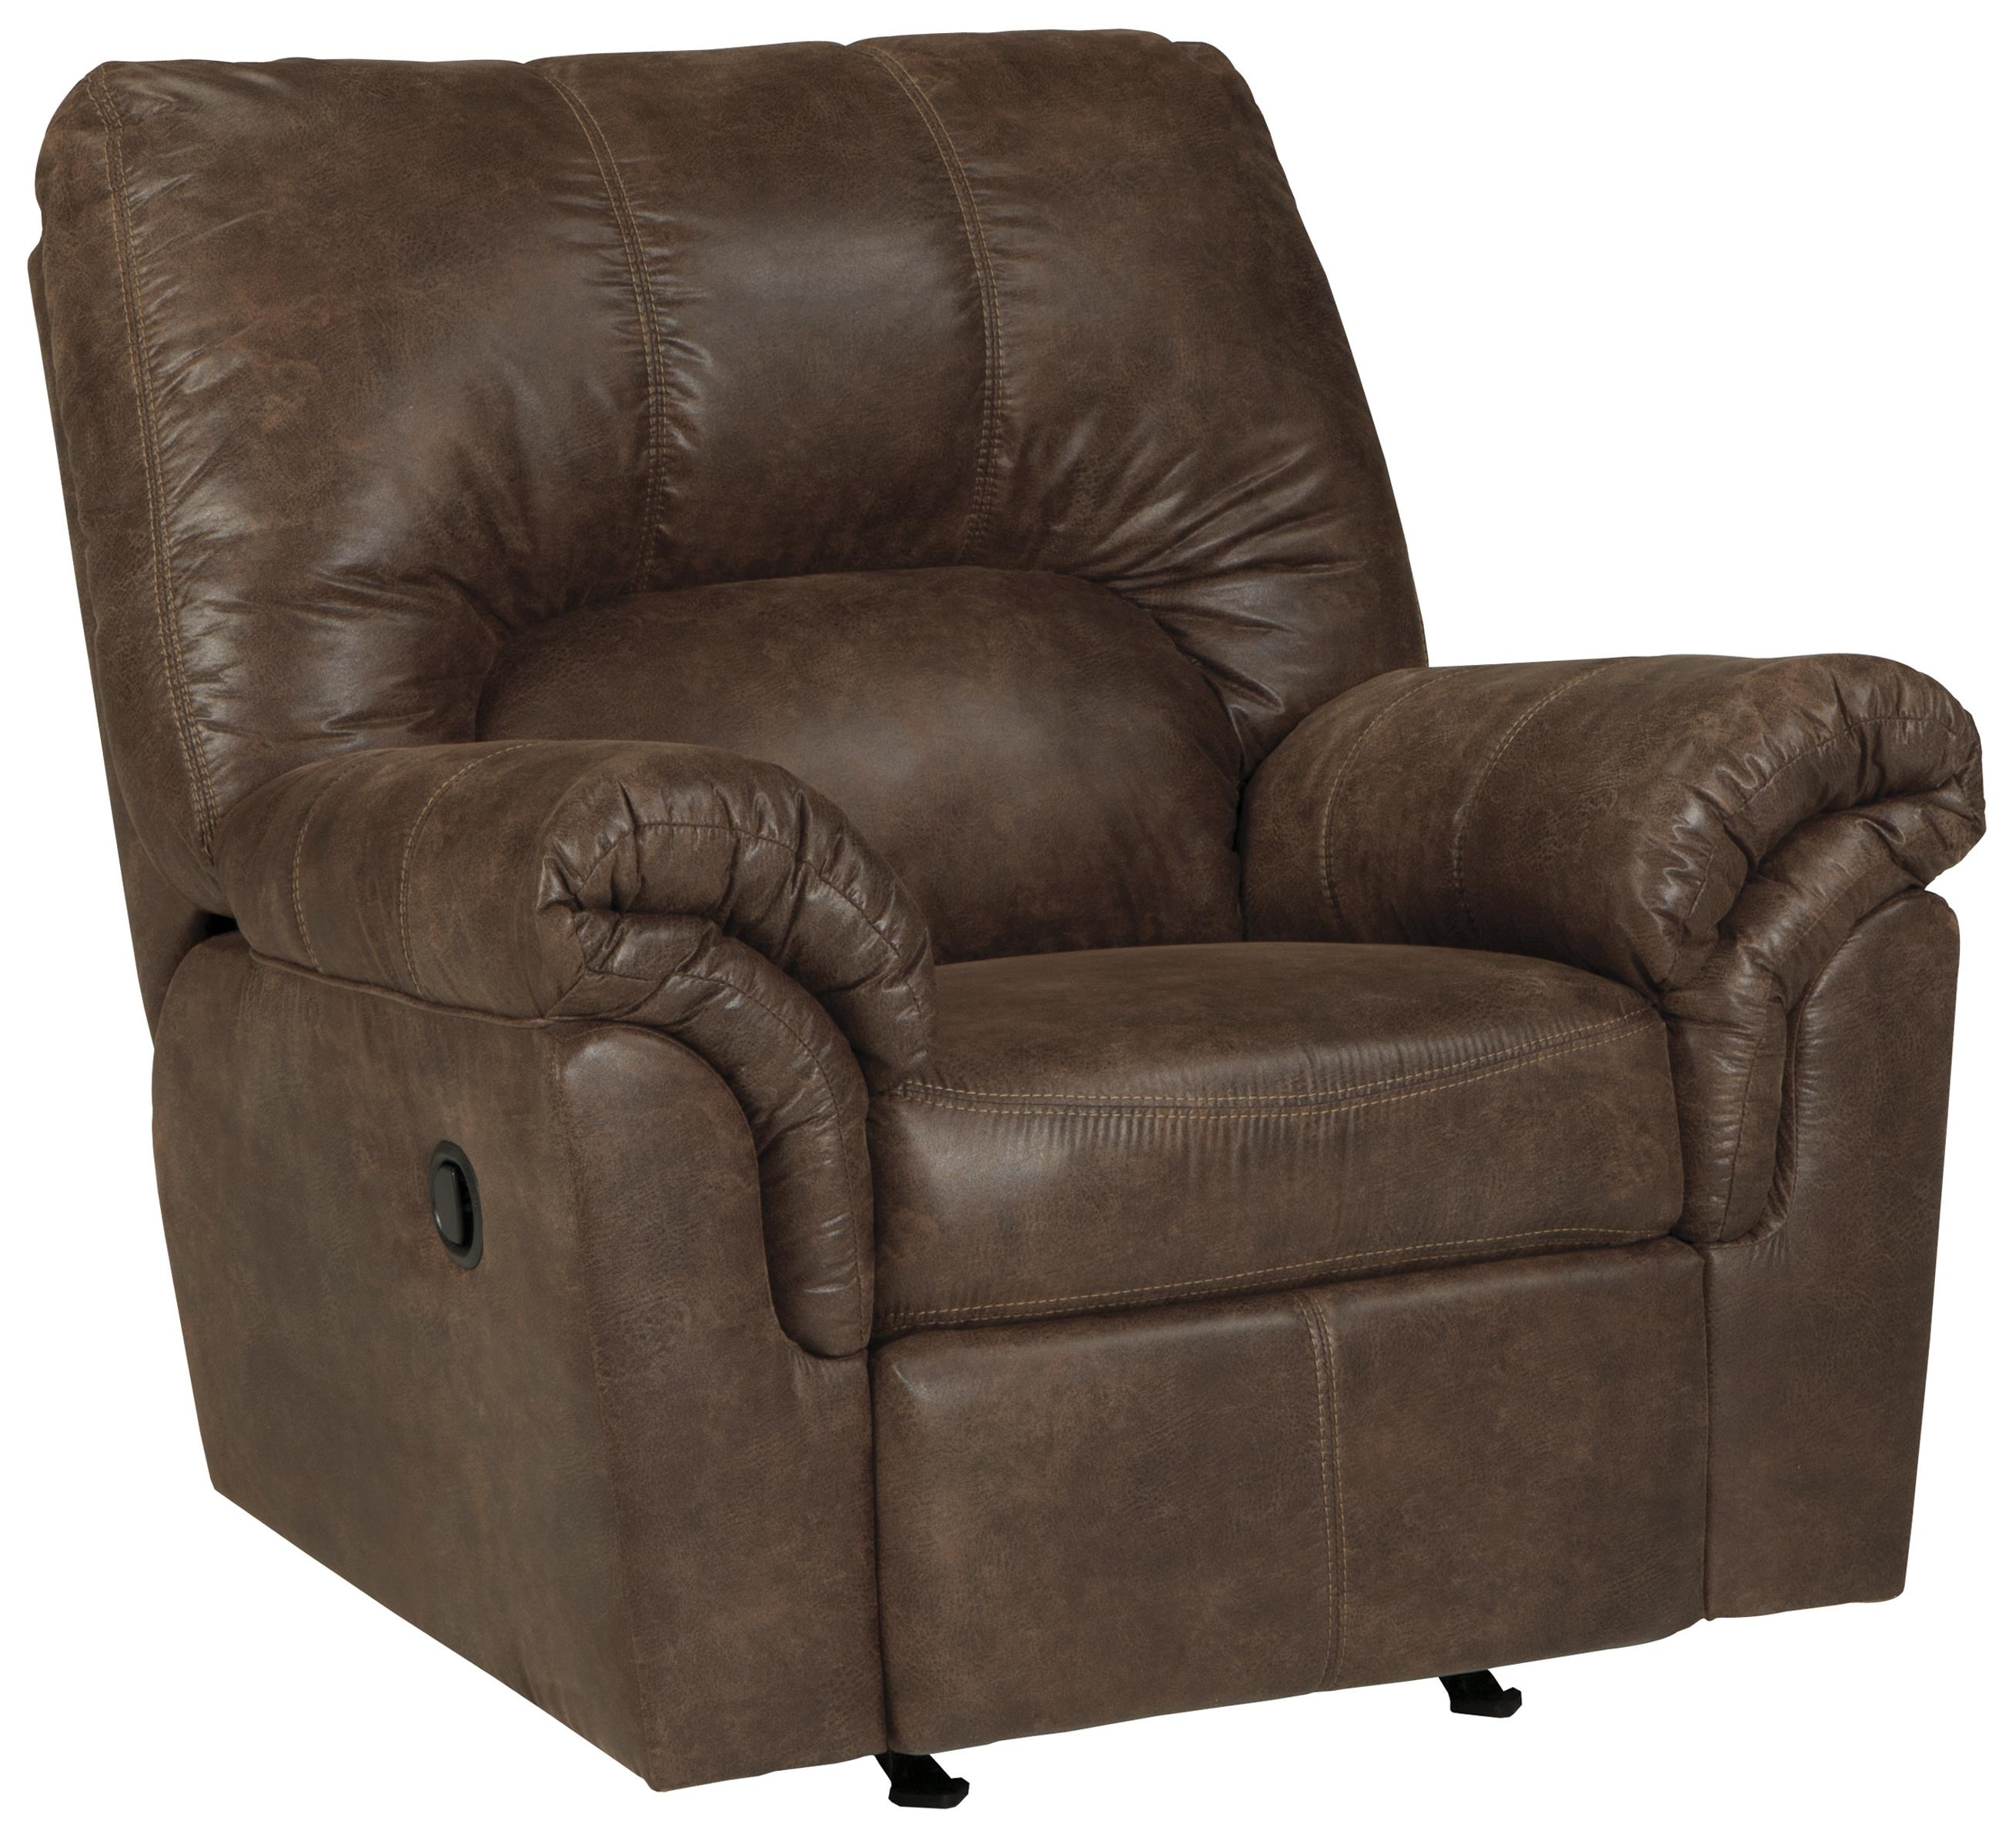 Signature Design by Ashley Bladen Rocker Recliner - Item Number: 1200025